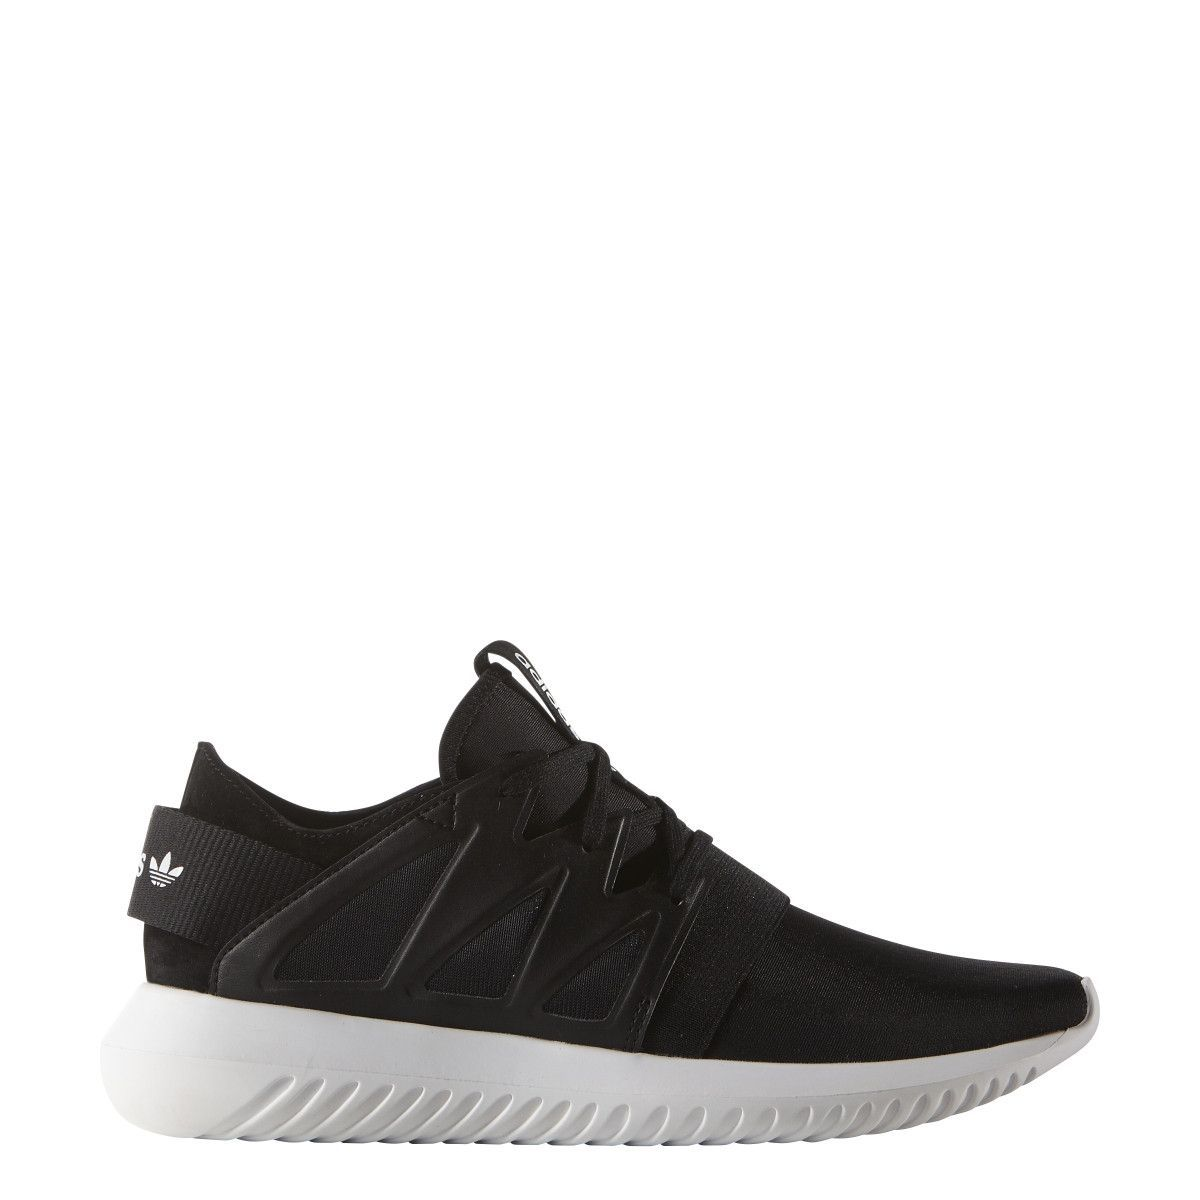 30393ca9394bf adidas ORIGINALS NMD R2 MENS TRAINERS RUNNING SHOES SIZE 6.5 - 11.5 ...